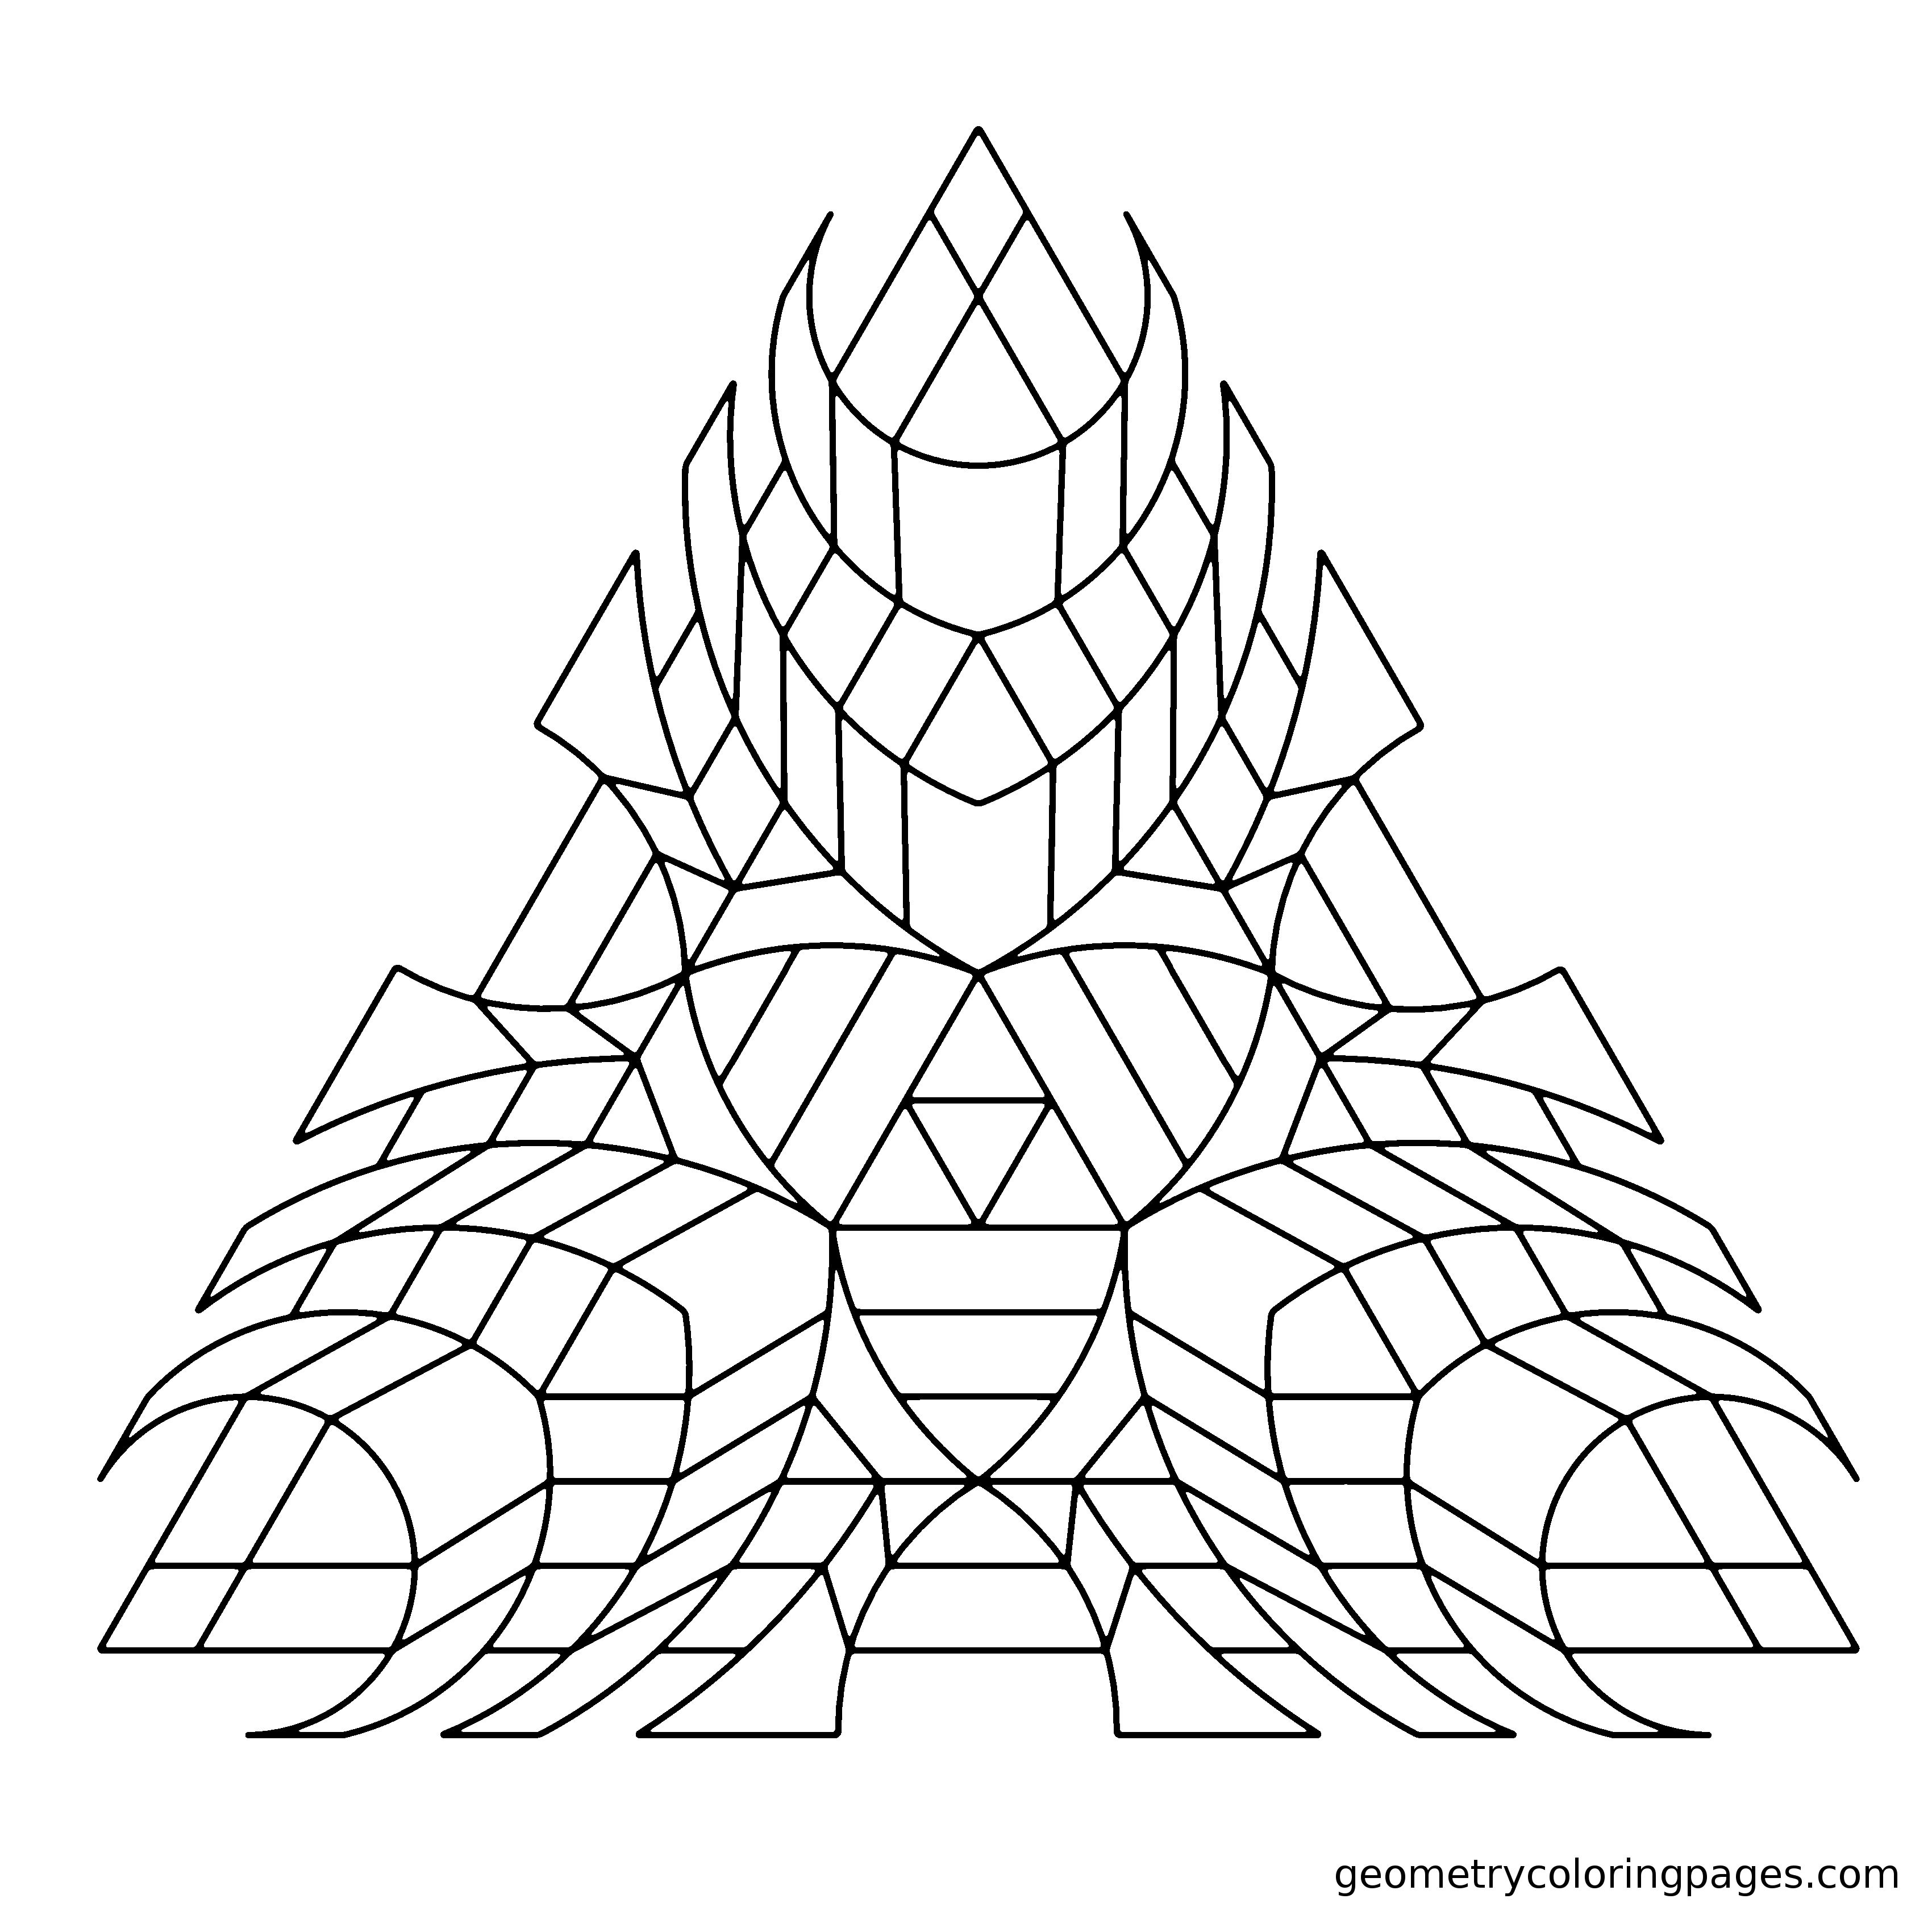 Geometry Coloring Page from geometrycoloringpages.com | Bastel ...